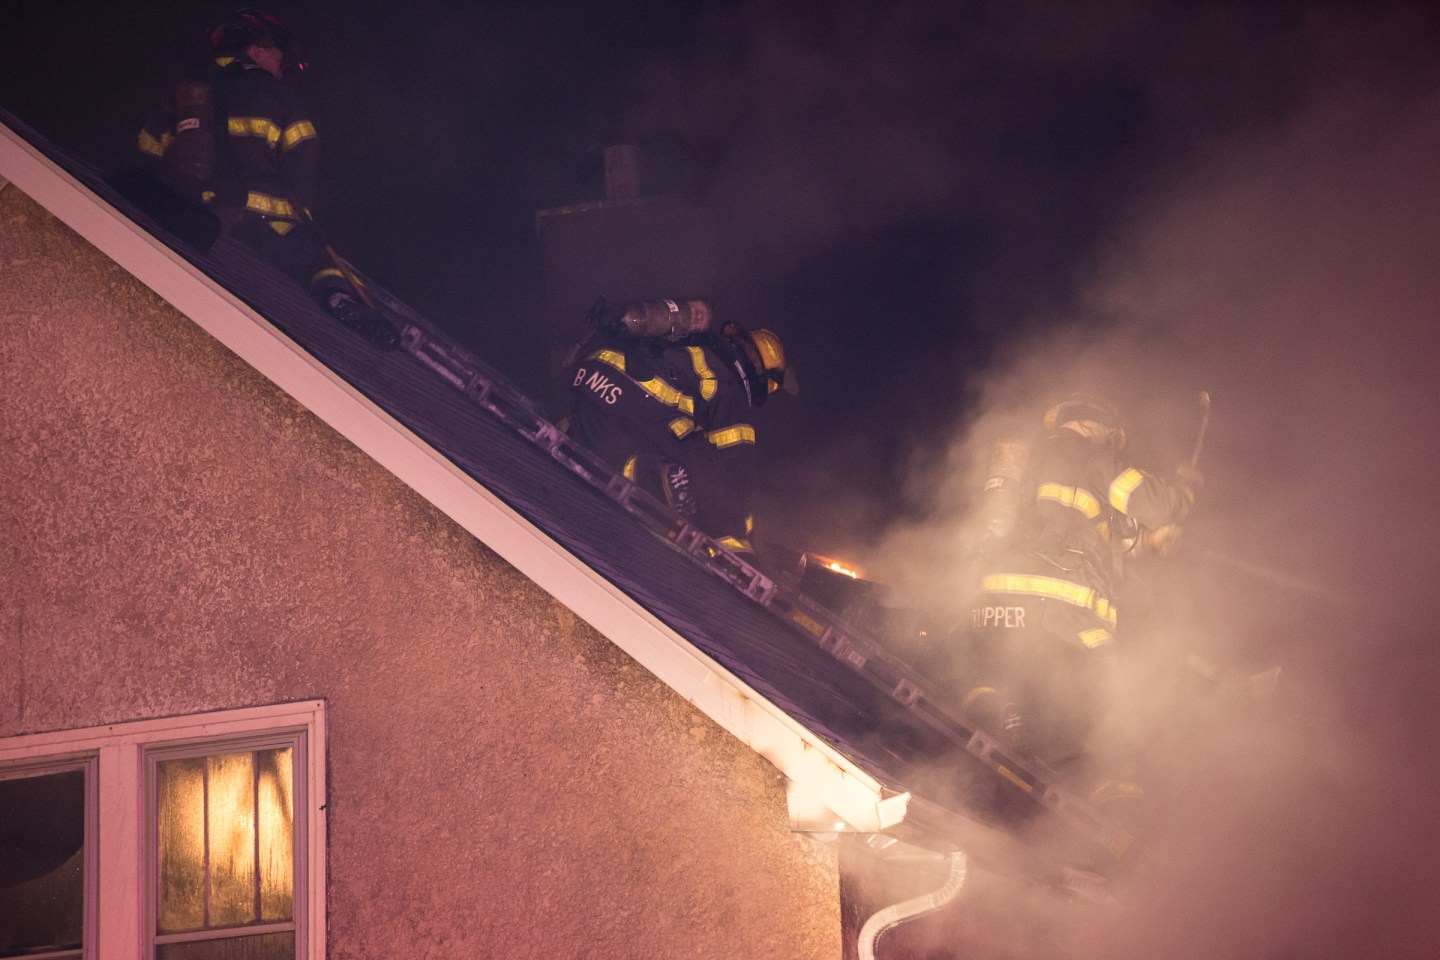 Firefighters working on a roof